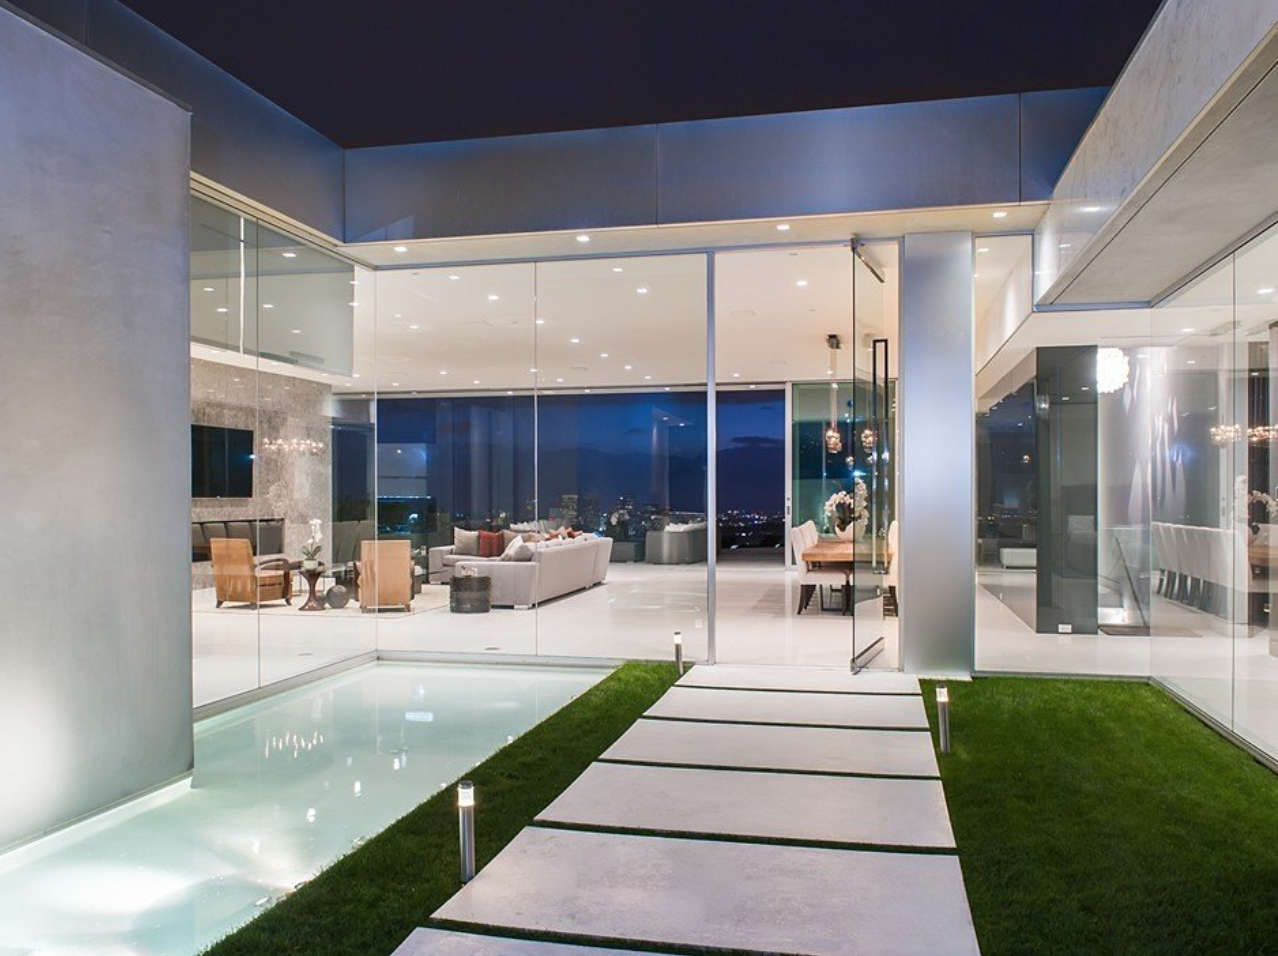 The minimalist mansion with floor-to-ceiling glass walls and manicured lawns can be rented for $150,000 per month.